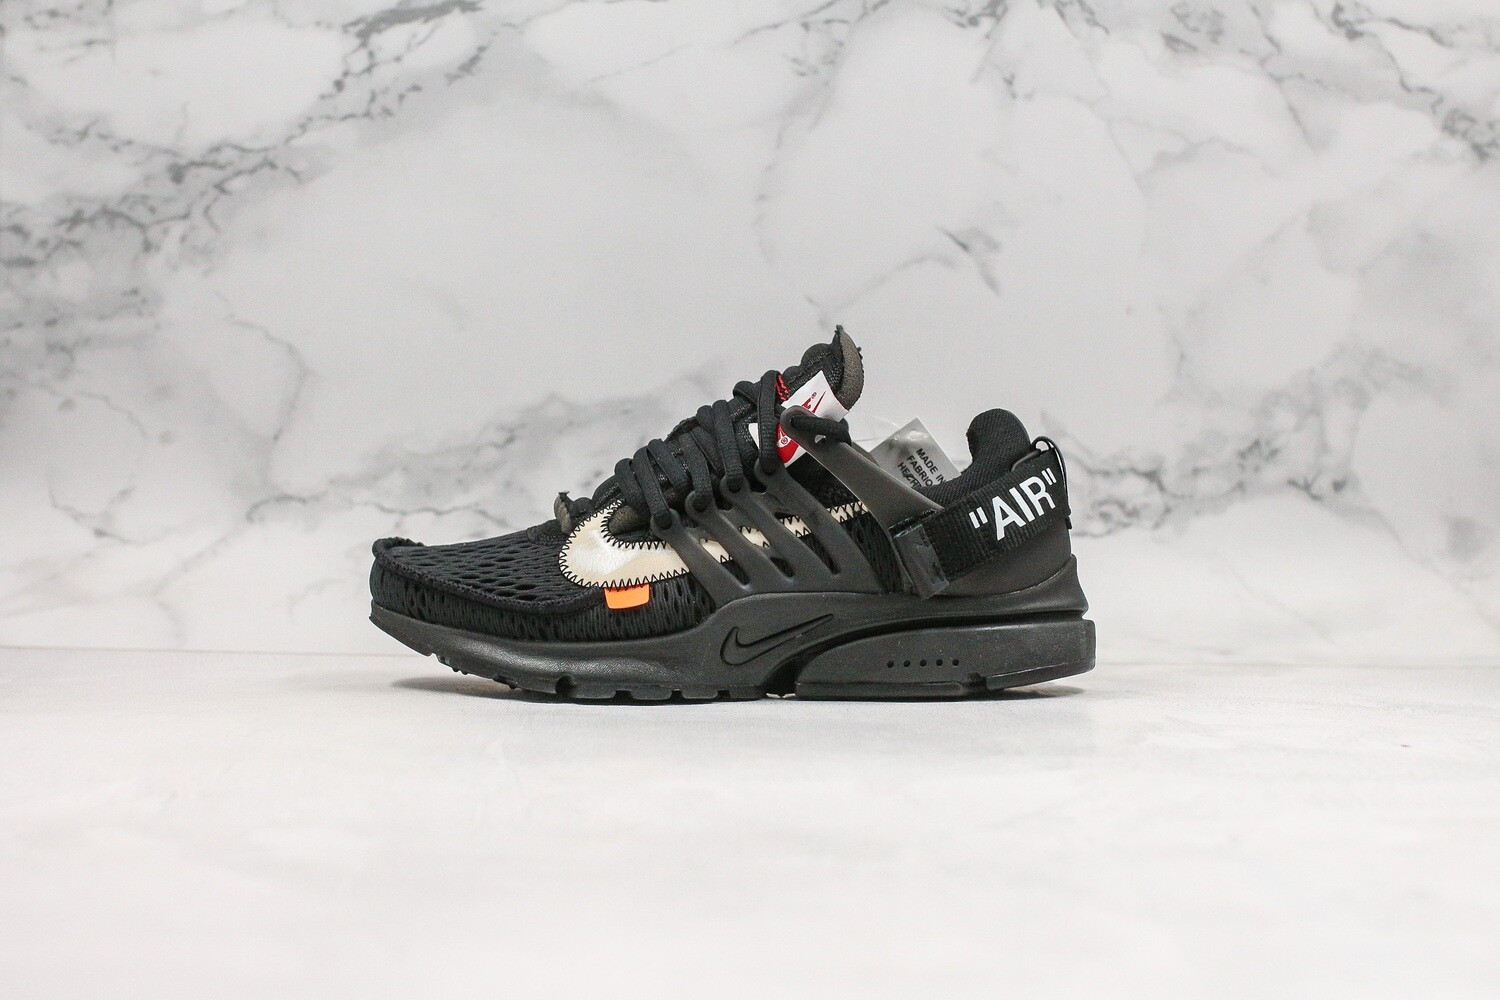 Men's/Women's Air Presto 2.0 x Off-White 'Black'  Basketball Shoes Casual Life sneakers